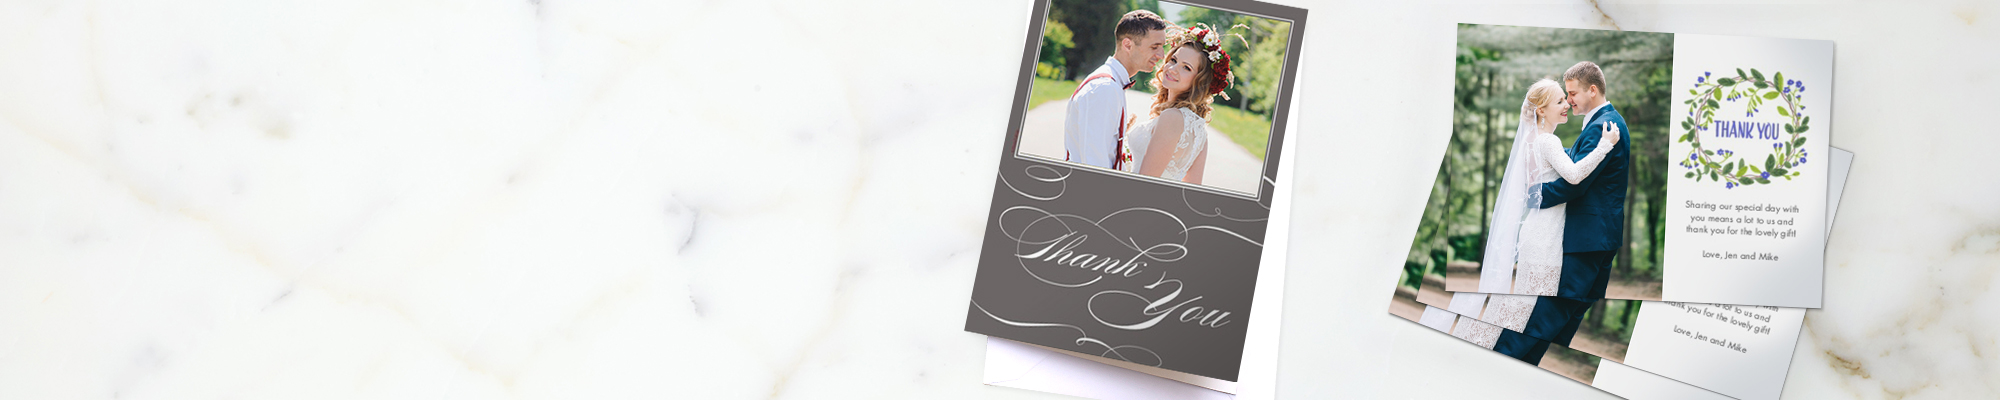 Wedding Cards : Personalised cards to send to your family and friends to share in your special day